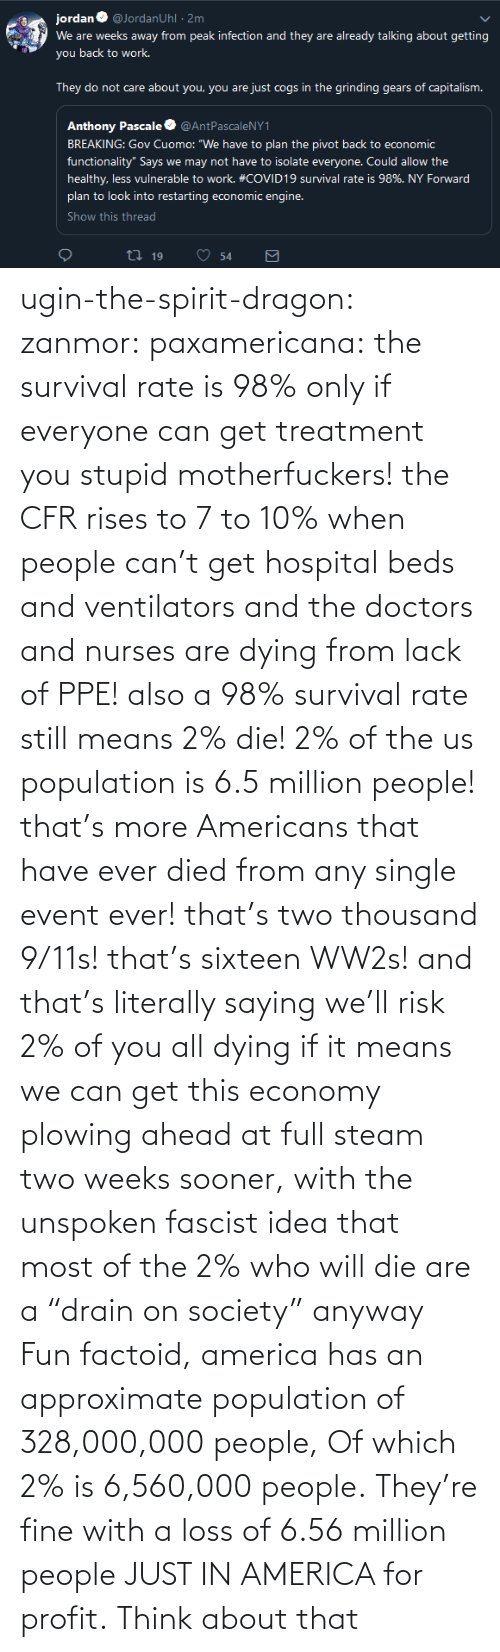 "The Us: ugin-the-spirit-dragon: zanmor:   paxamericana:  the survival rate is 98% only if everyone can get treatment you stupid motherfuckers! the CFR rises to 7 to 10% when people can't get hospital beds and ventilators and the doctors and nurses are dying from lack of PPE!  also a 98% survival rate still means 2% die! 2% of the us population is 6.5 million people! that's more Americans that have ever died from any single event ever! that's two thousand 9/11s! that's sixteen WW2s!  and that's literally saying we'll risk 2% of you all dying if it means we can get this economy plowing ahead at full steam two weeks sooner, with the unspoken fascist idea that most of the 2% who will die are a ""drain on society"" anyway    Fun factoid, america has an approximate population of 328,000,000 people,  Of which 2% is 6,560,000 people. They're fine with a loss of 6.56 million people JUST IN AMERICA for profit. Think about that"